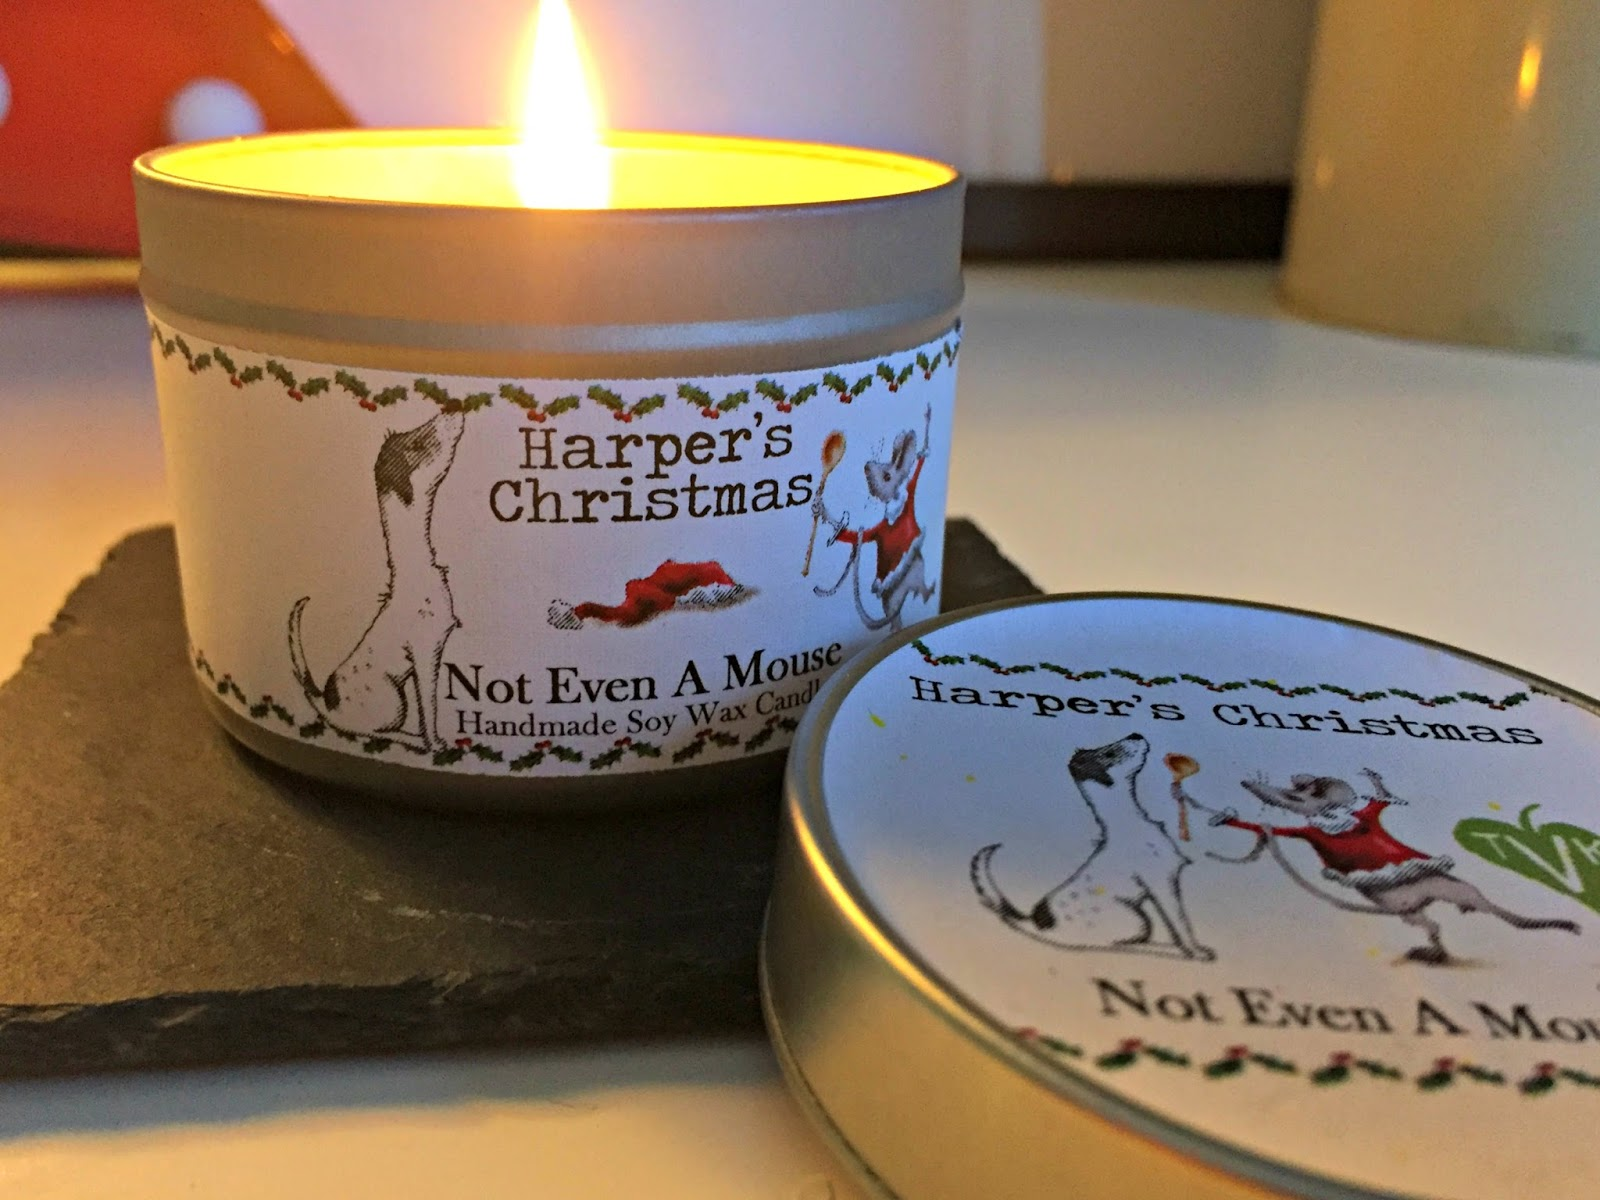 Harper's Bizarre Christmas Vegan Candle Not Even A Mouse